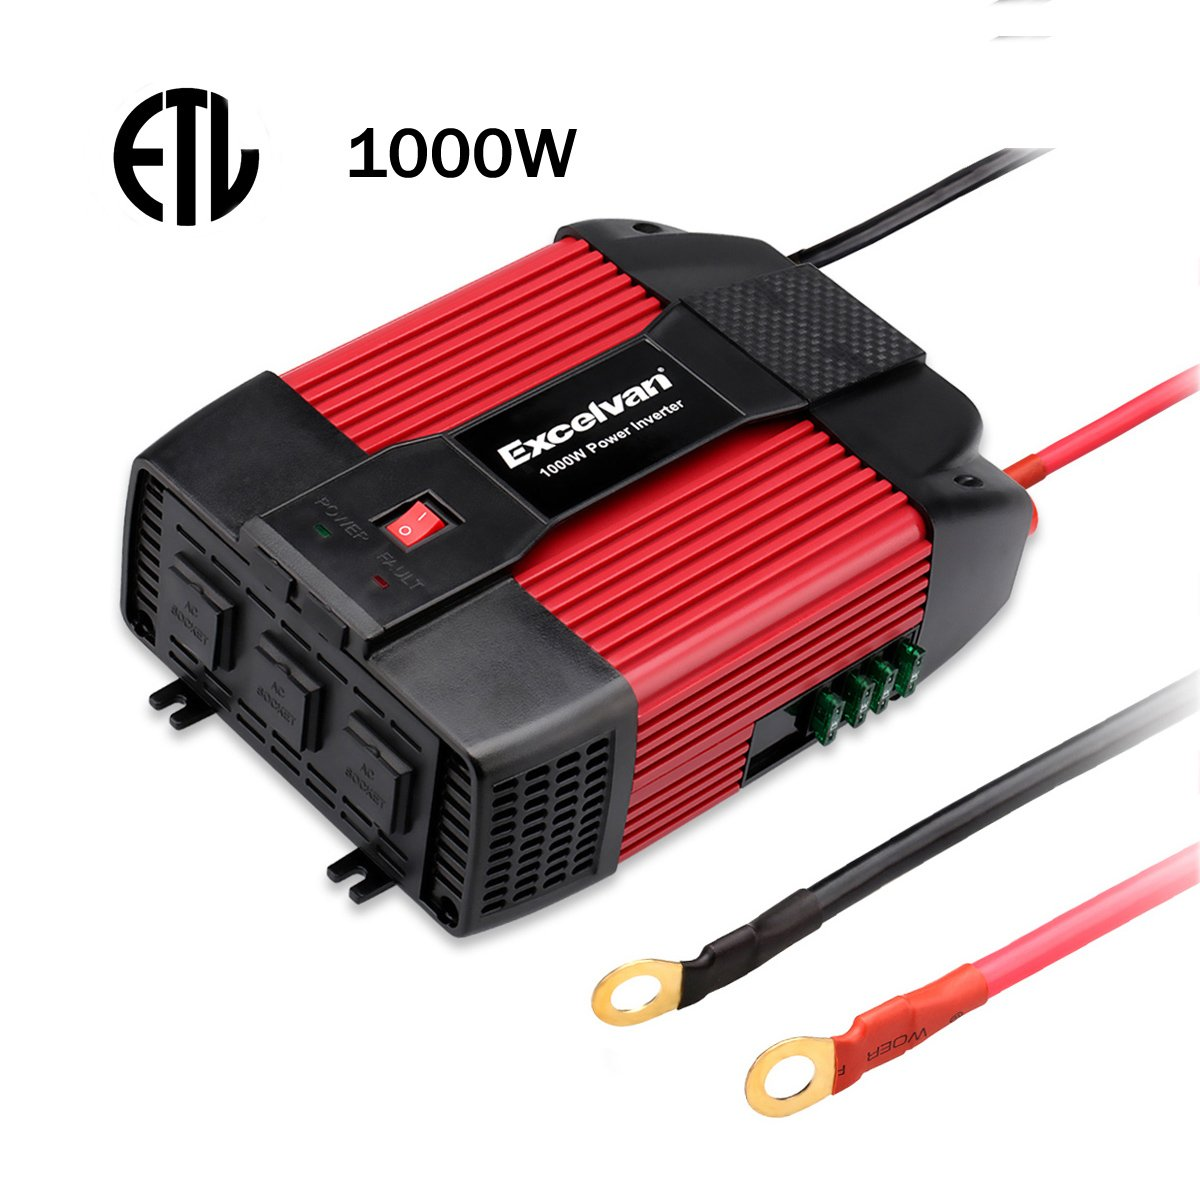 Excelvan 1000W Car Power Inverter 12V DC to 110V AC with Dual USB Port and 3 AC Outlet